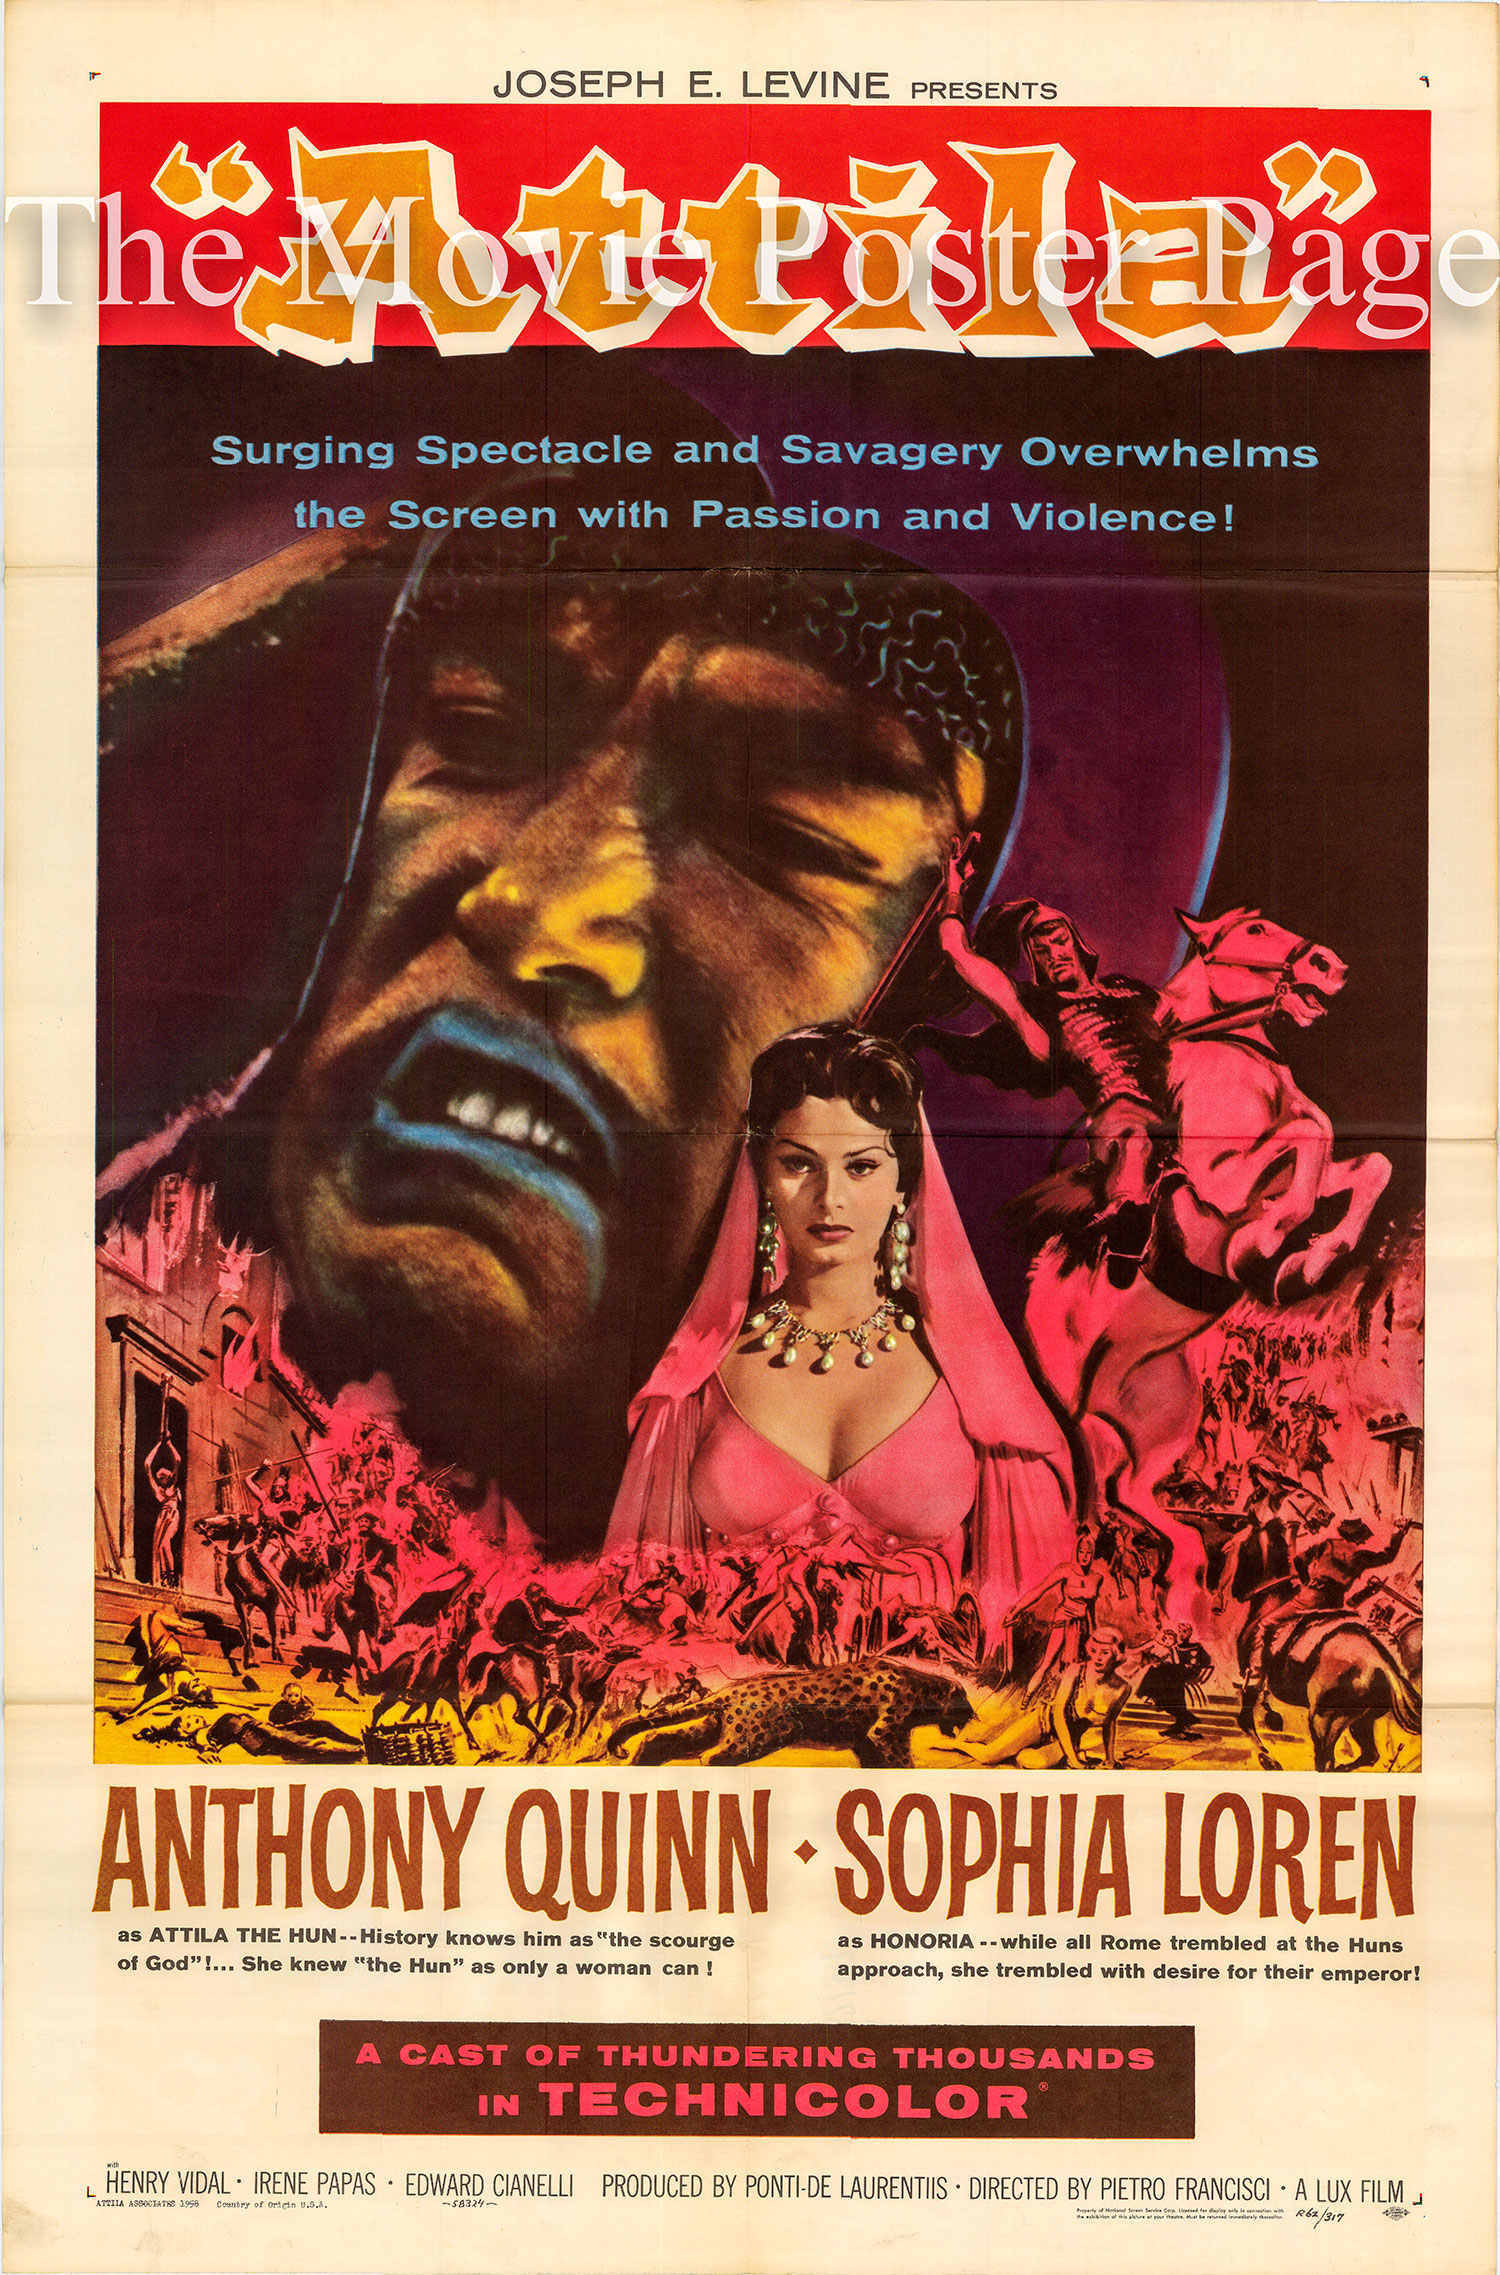 Pictured is a US one-sheet promotional poster for a 1962 rerelease of the 1954 Pietro Francisci film Attila starring Anthony Quinn and Sophia Loren.